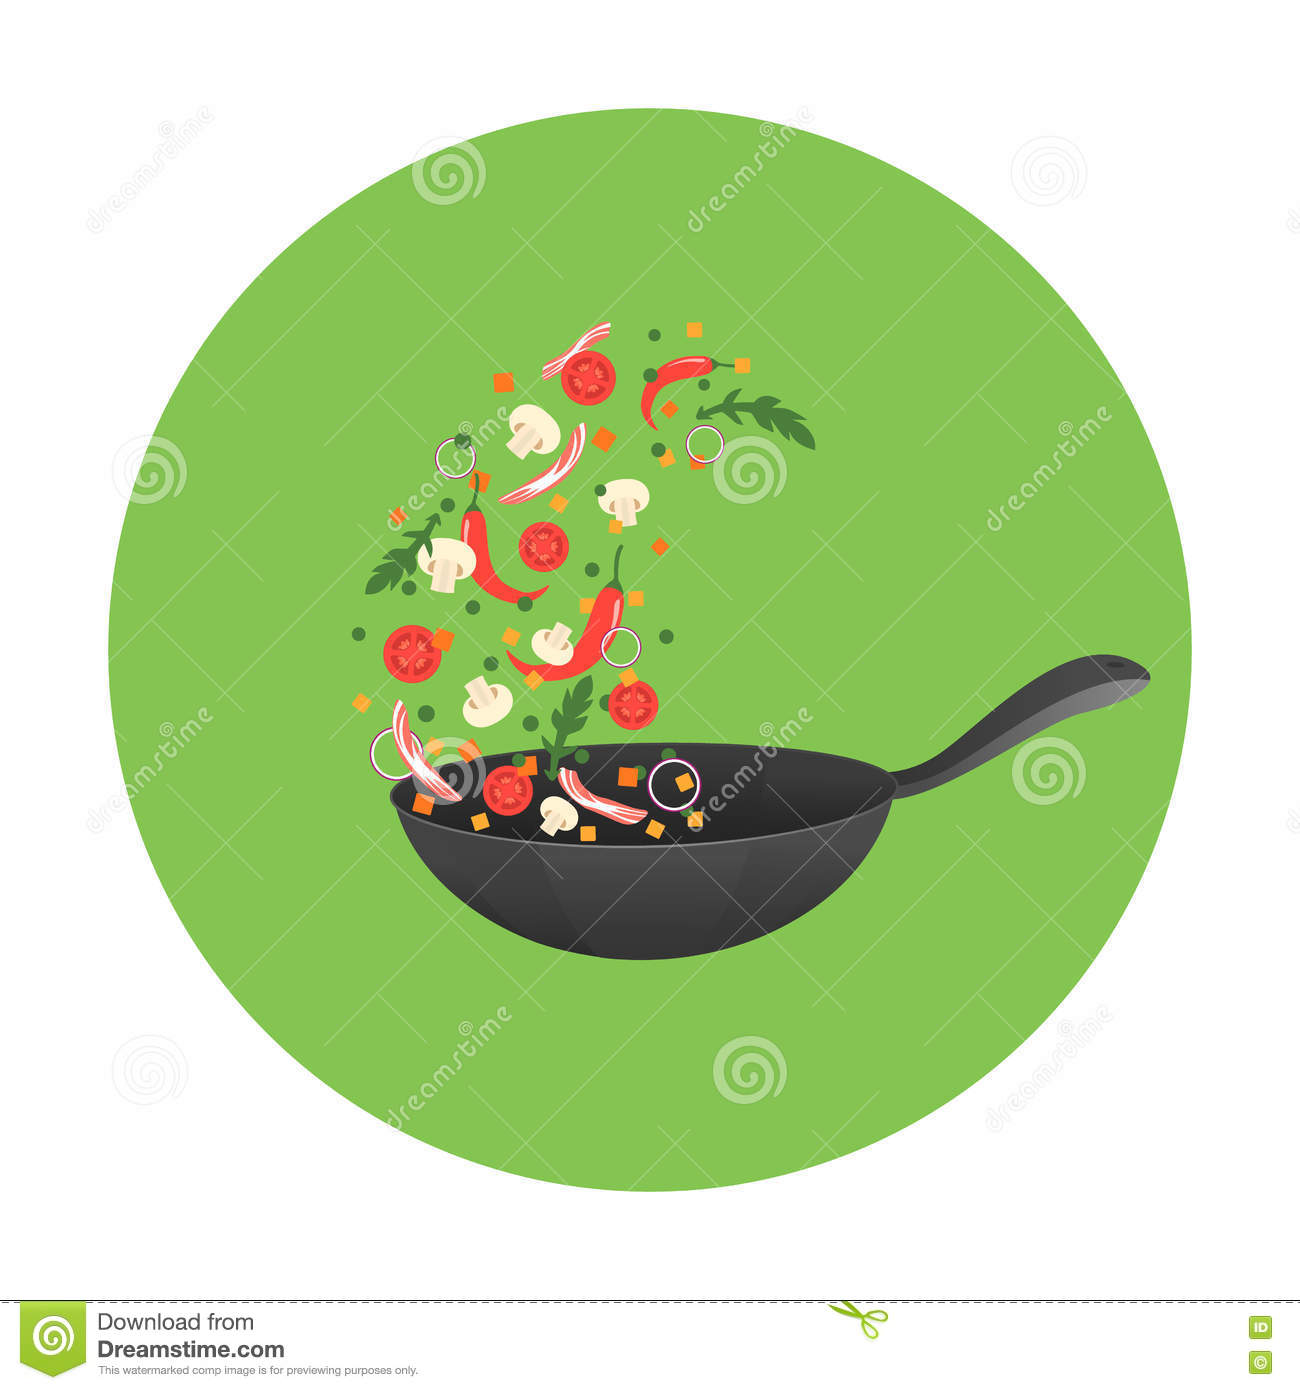 Cooking Process Illustration. Flipping Asian Food In A Pan. Stock.